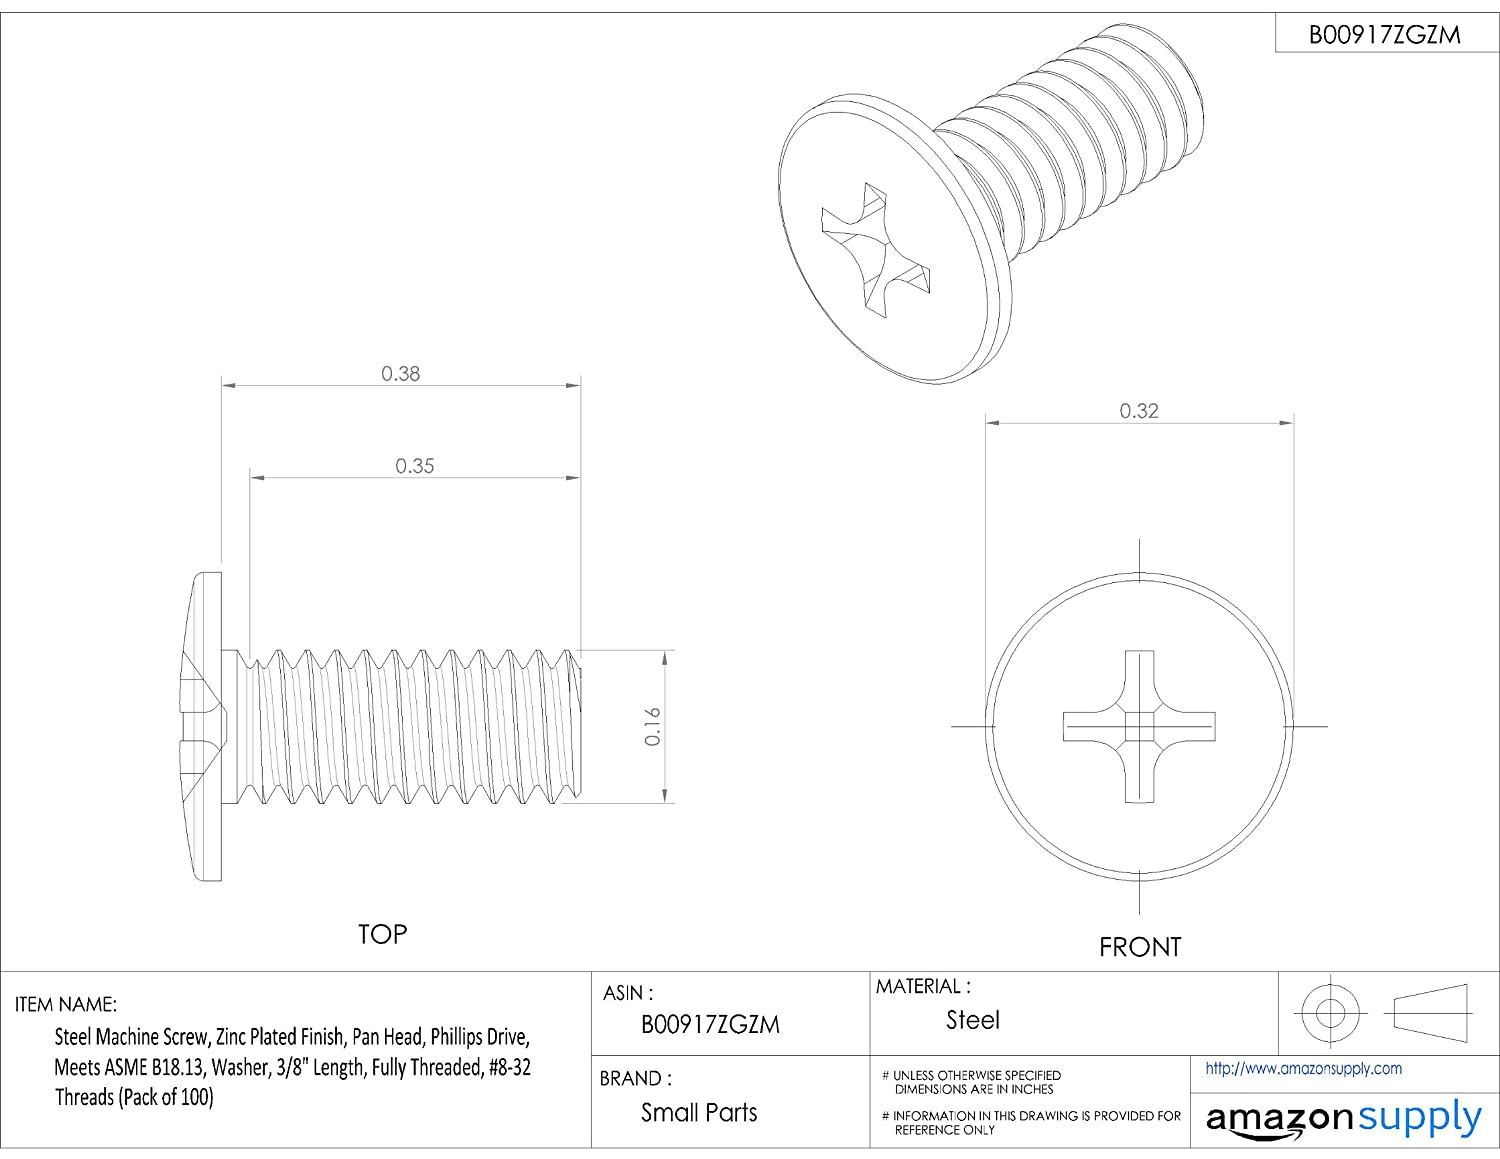 #8-32 UNC Threads 3//8 Length Small Parts Pack of 100 3//8 Length Zinc Plated Finish Steel Machine Screw Fully Threaded Internal-Tooth Lock Washer Meets ASME B18.13 Pan Head Phillips Drive